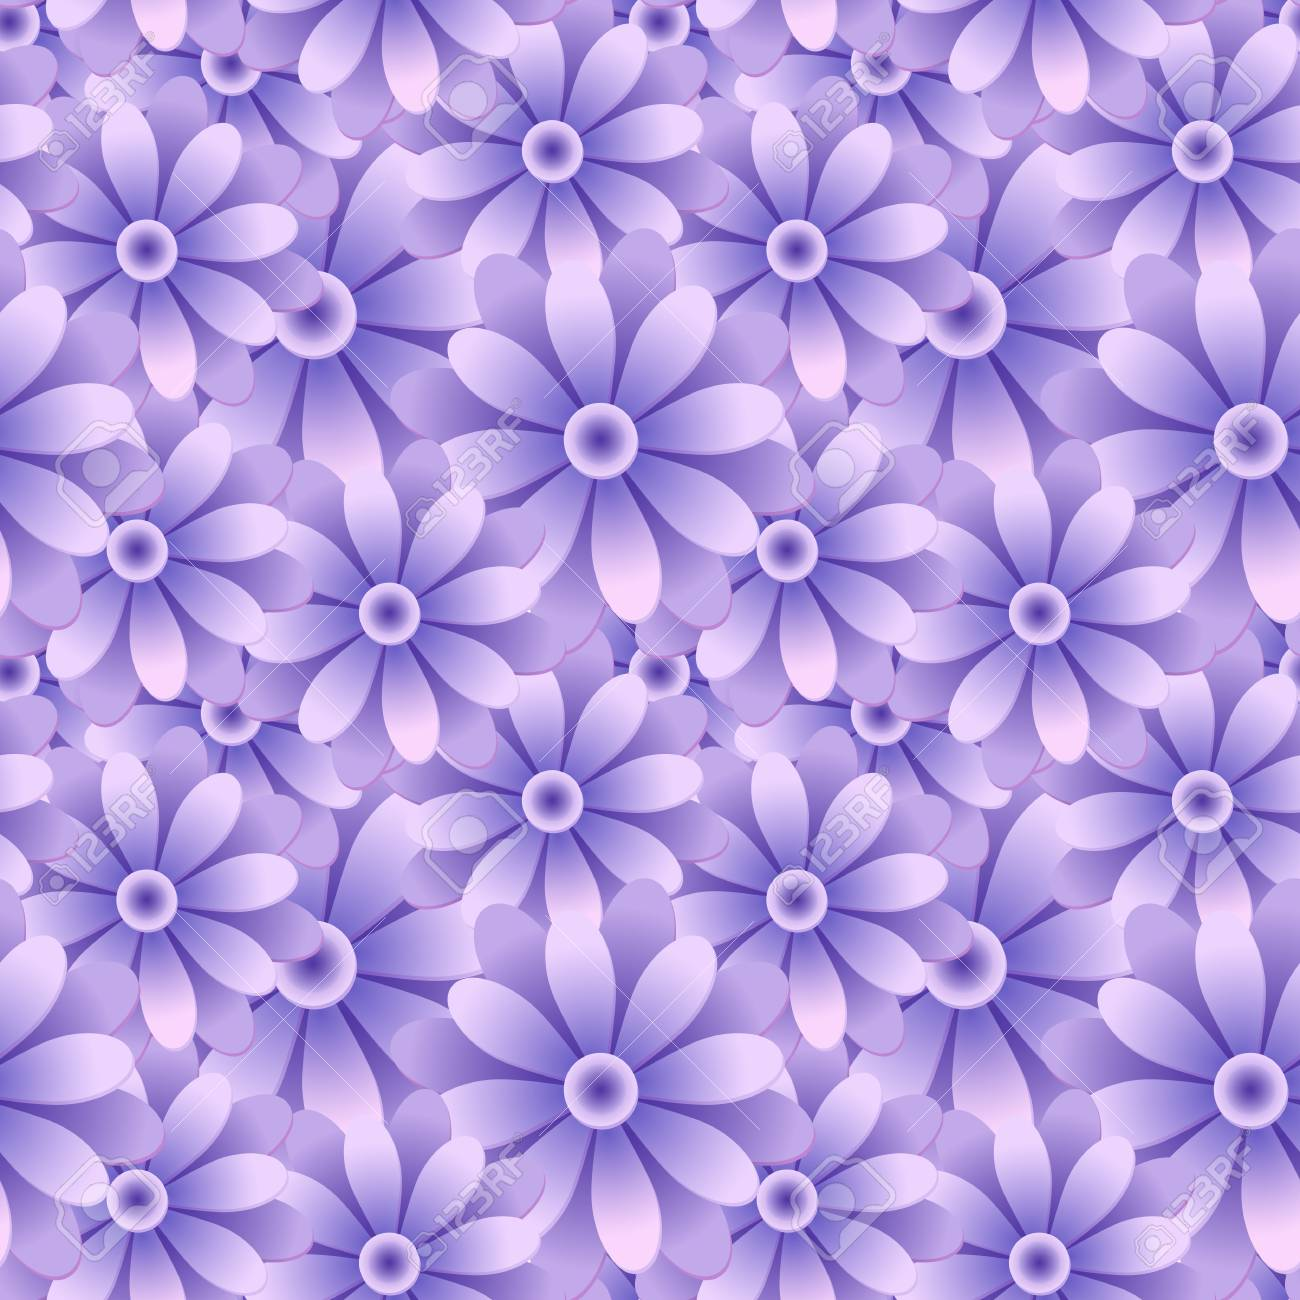 Retro Seamless Wallpaper Background Vintage Purple Blue Round Daisy Garden Flower Stock Vector